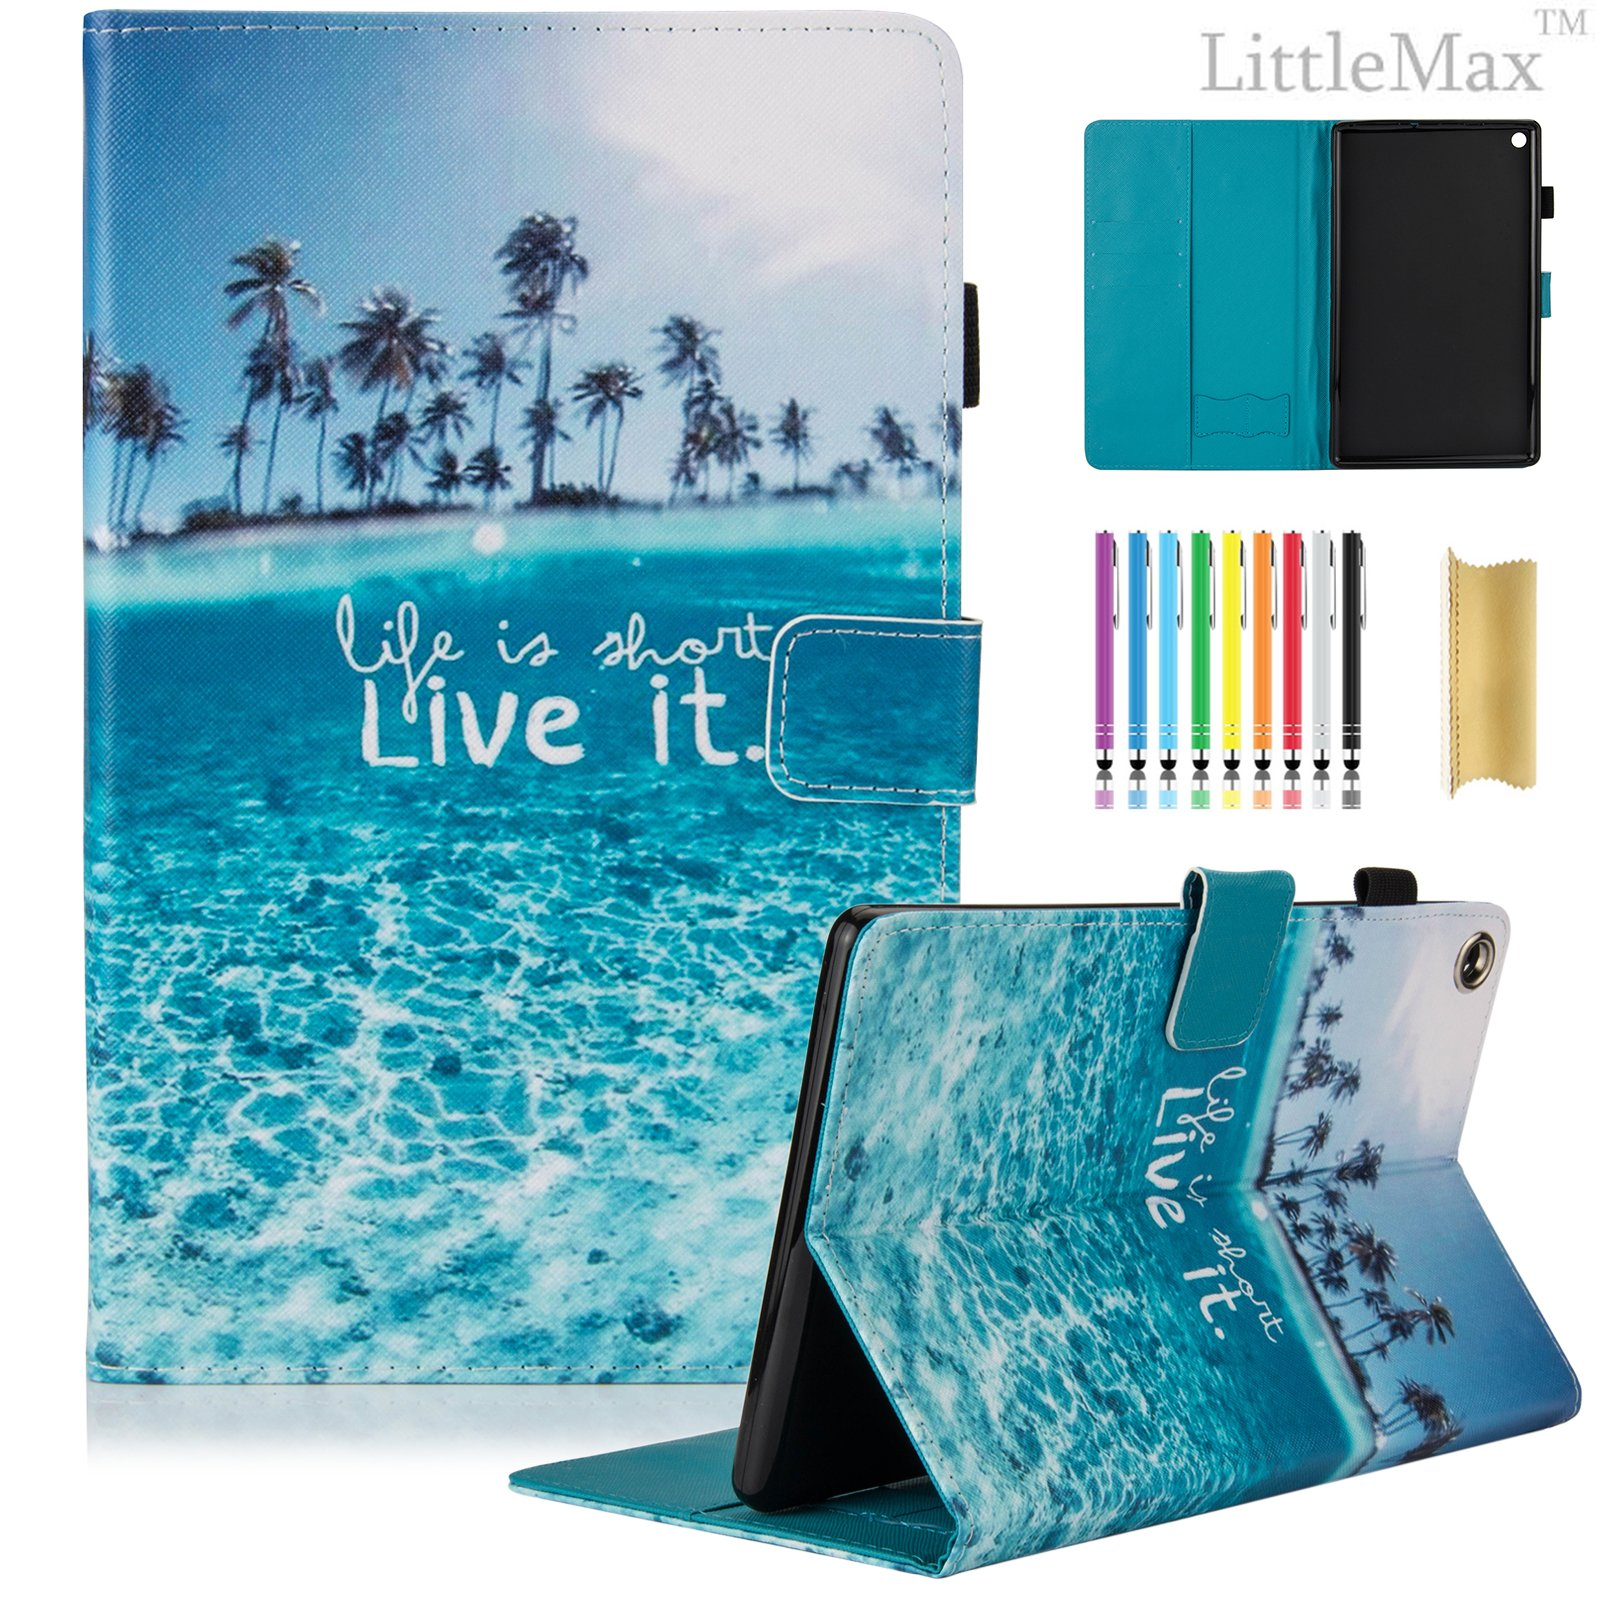 Kindle Fire HD 8 Case,LittleMax PU Leather Case Flip Stand Protective Auto Wake/Sleep Cover for Amazon Kindle Fire HD 8 7th Gen 2017 Release & 6th Gen Release 2016 with Free Stylus-04 Beach by LittleMax